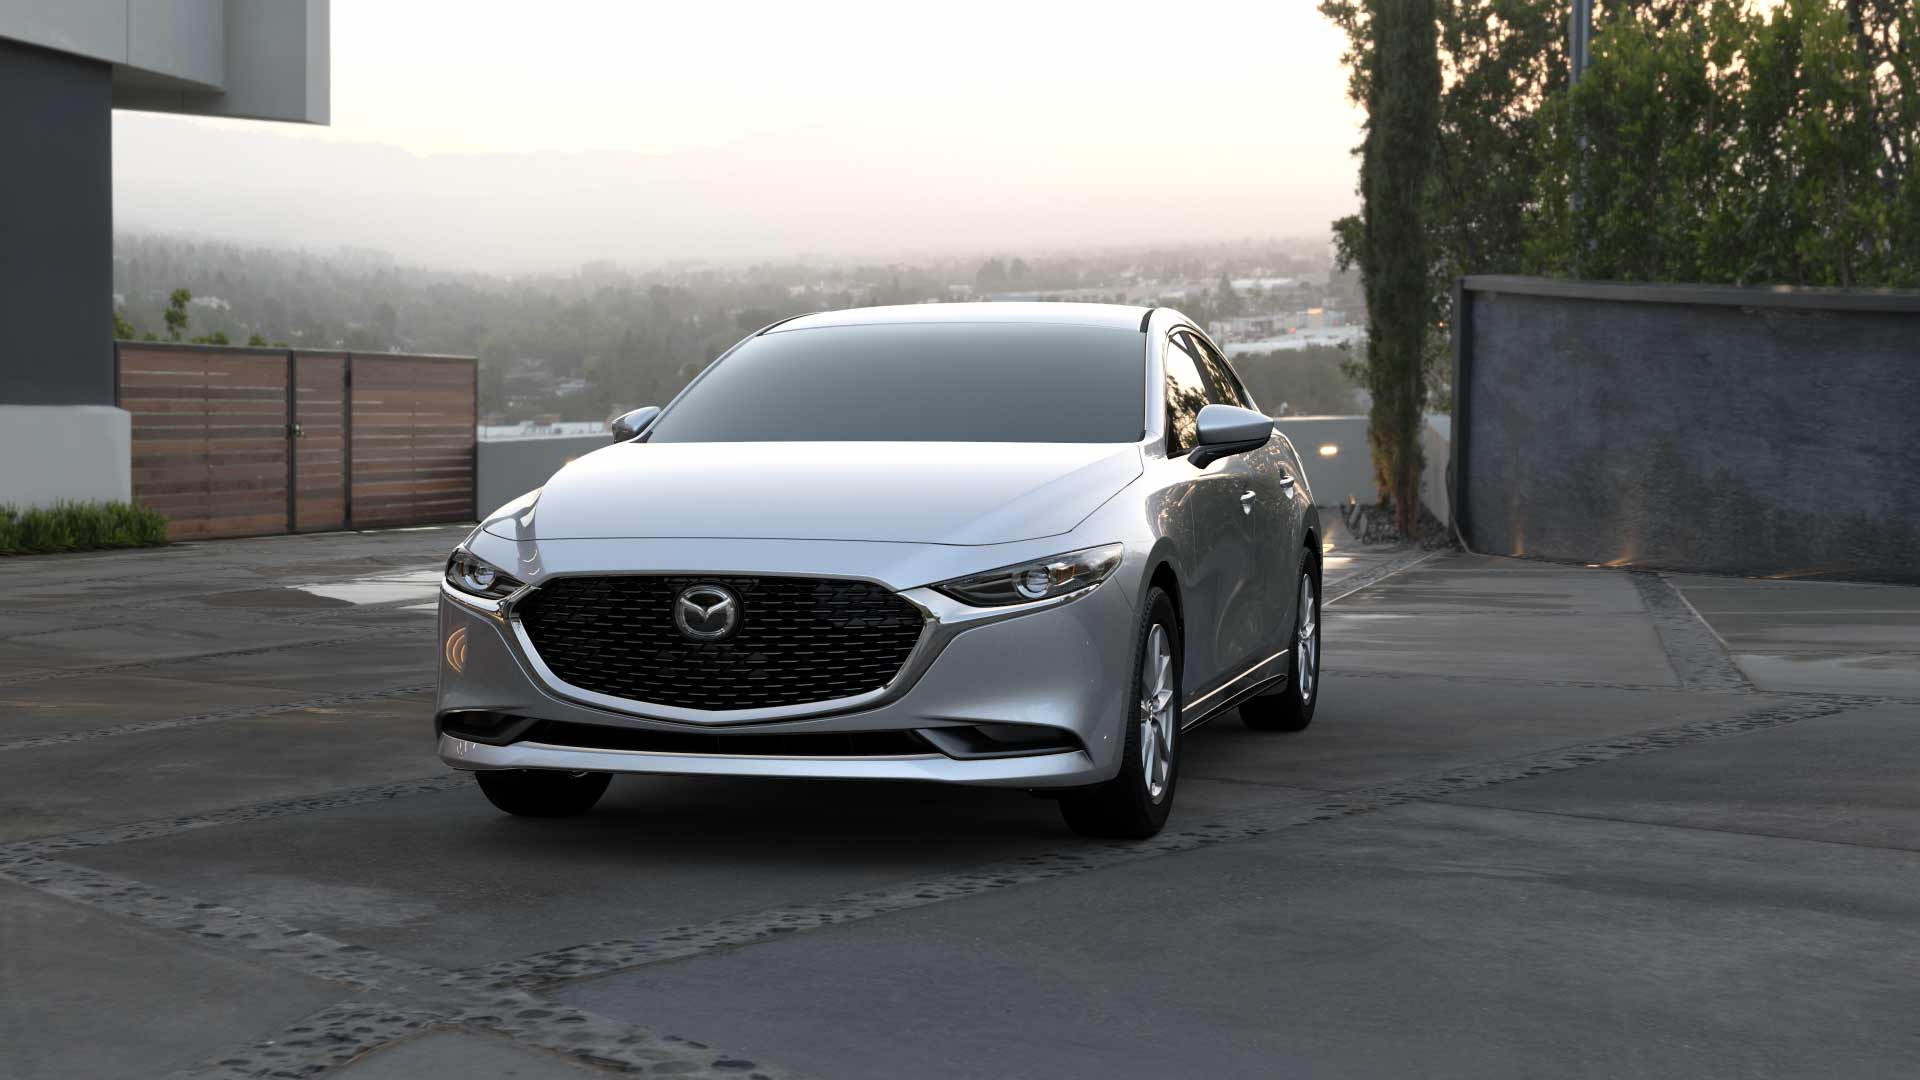 Difference Between the Mazda3 Hatchback and Sedan